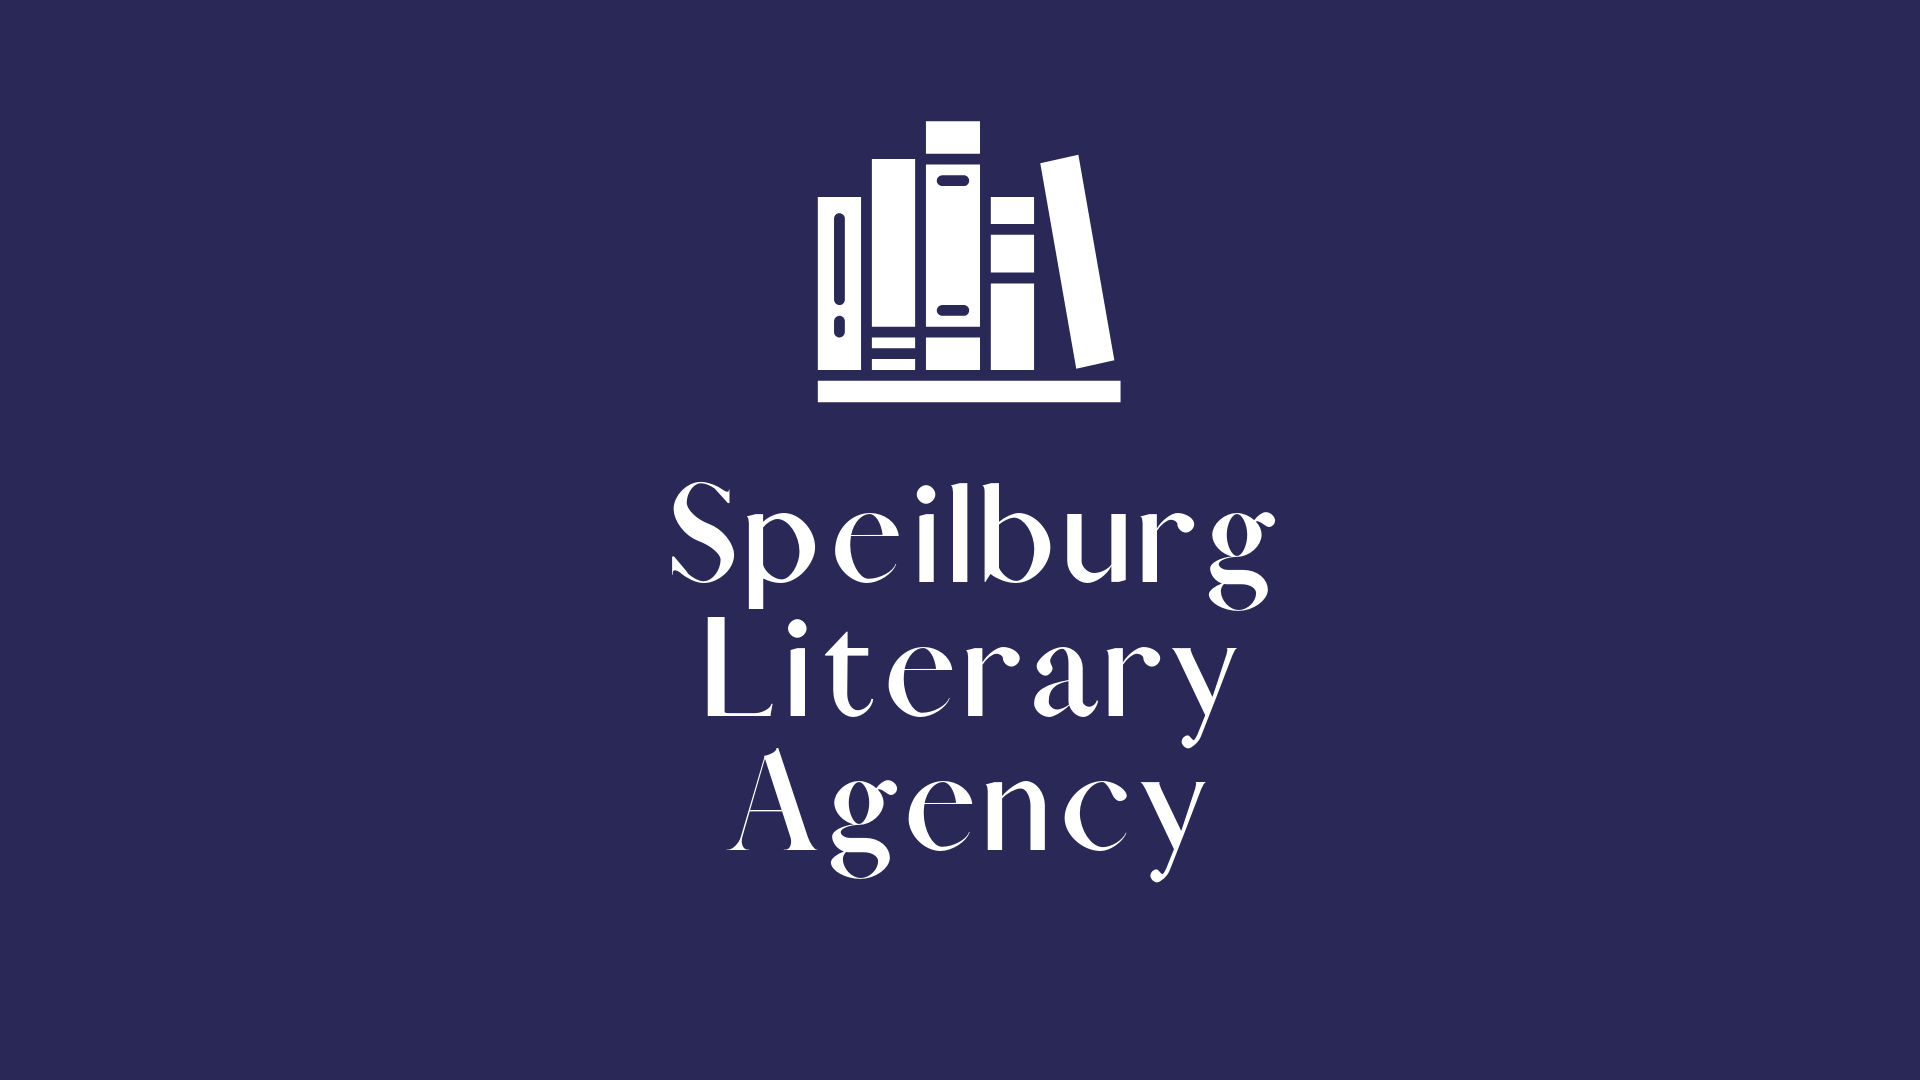 Meet Our Agents - Seeking representation for a book idea you have? Check out what each of our agents is looking for.